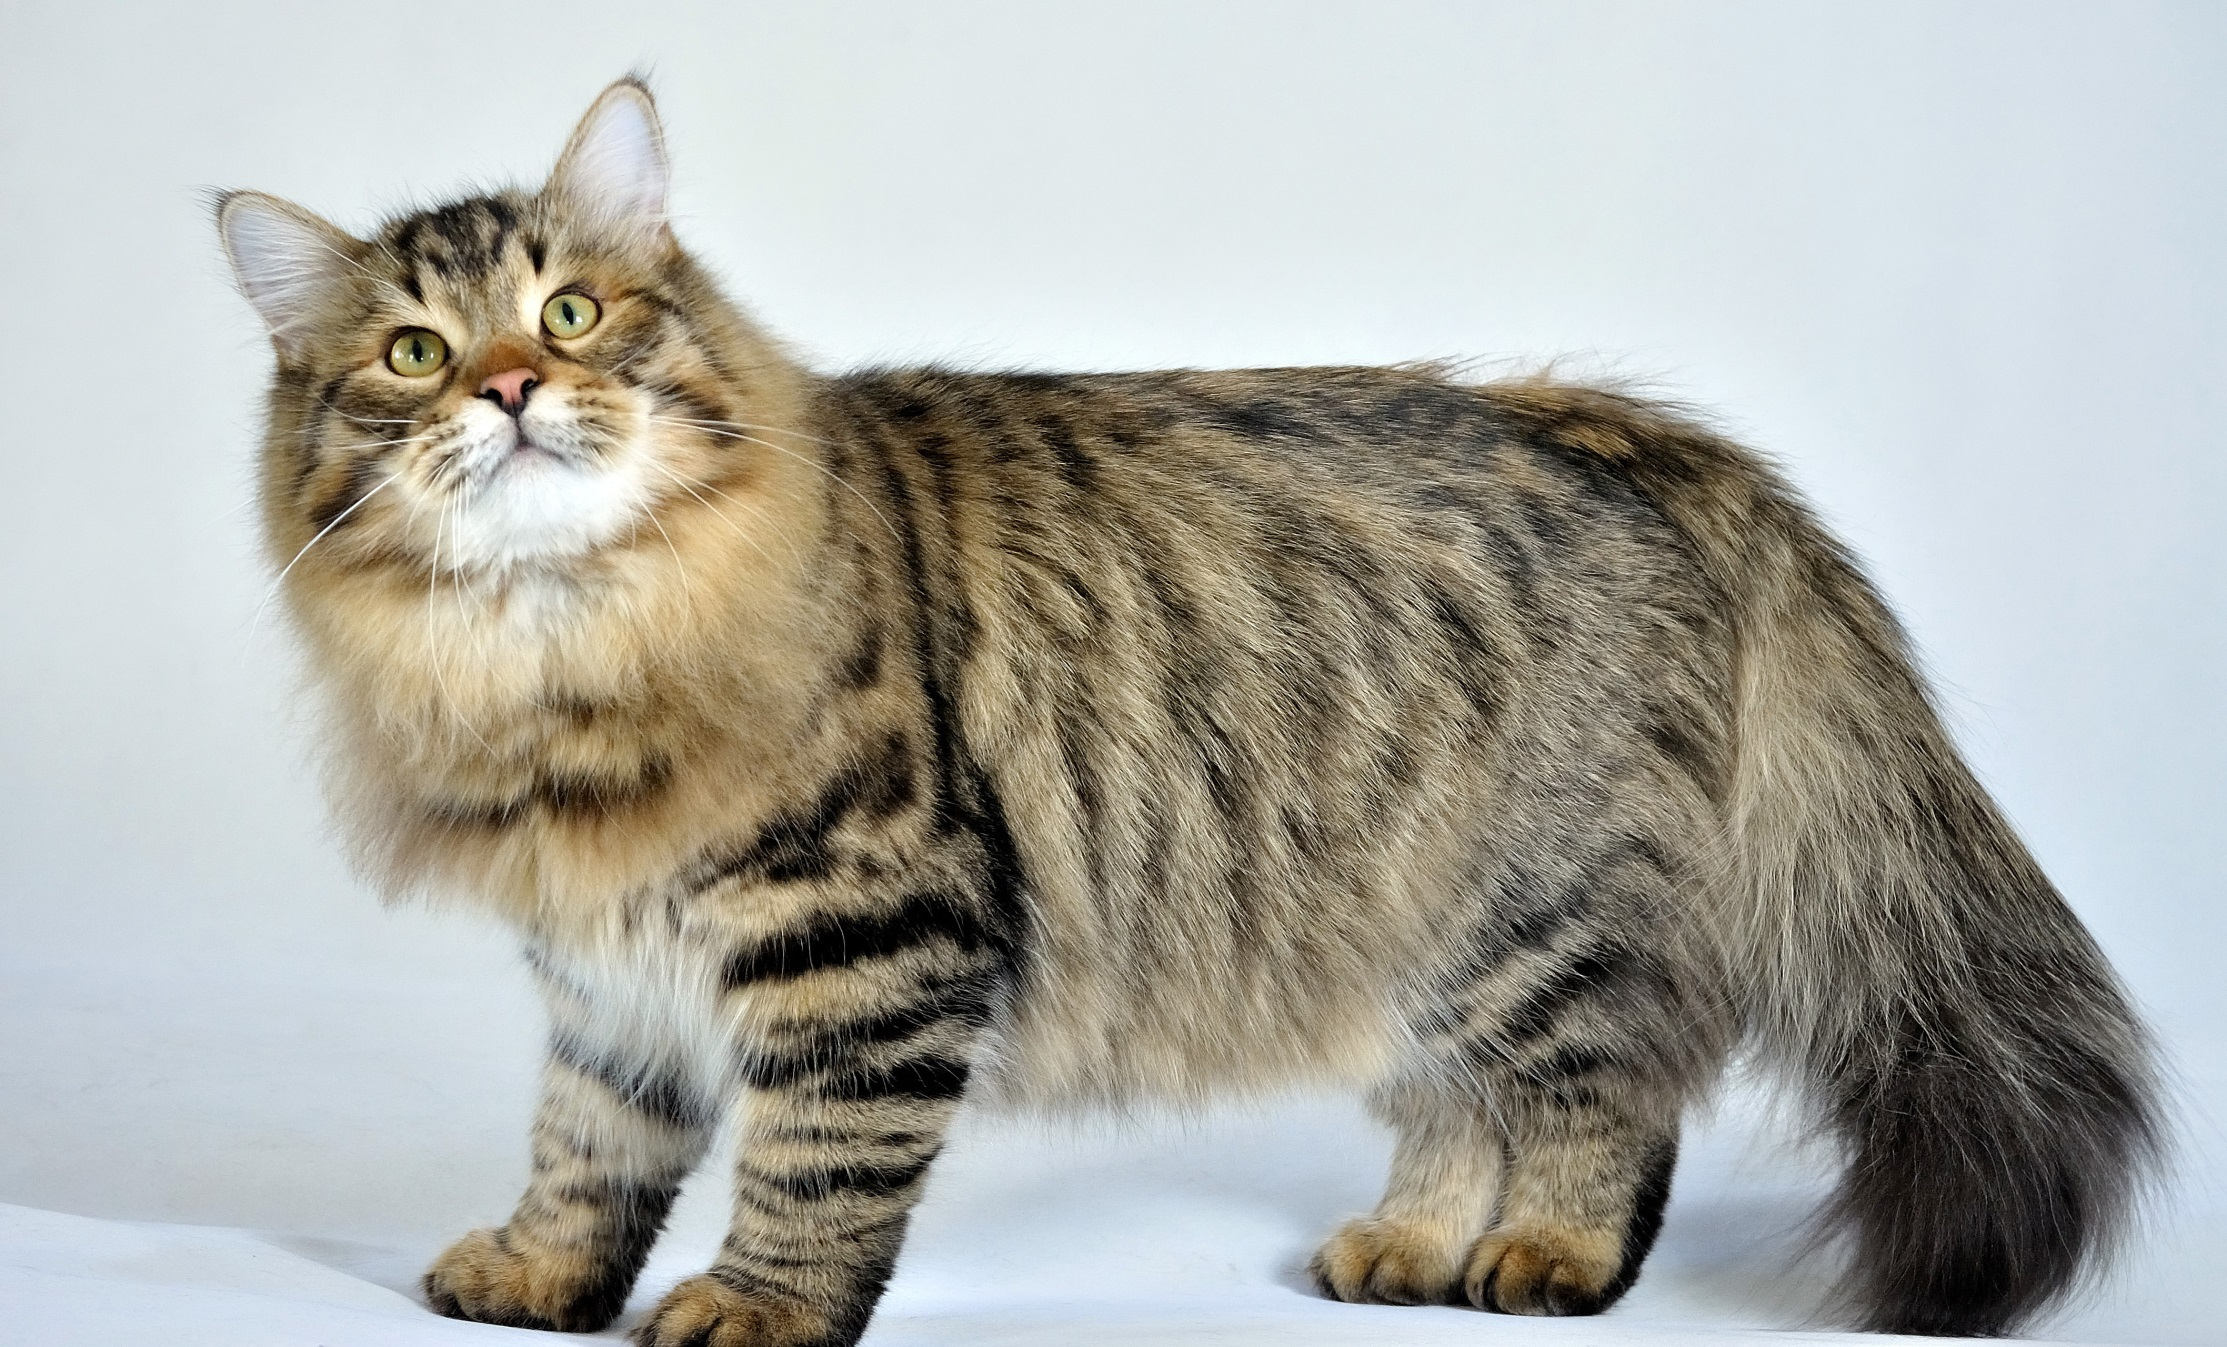 http://www.zastavki.com/pictures/originals/2013/Animals___Cats_Siberian_cat_posing_on_a_white_background_045072_.jpg